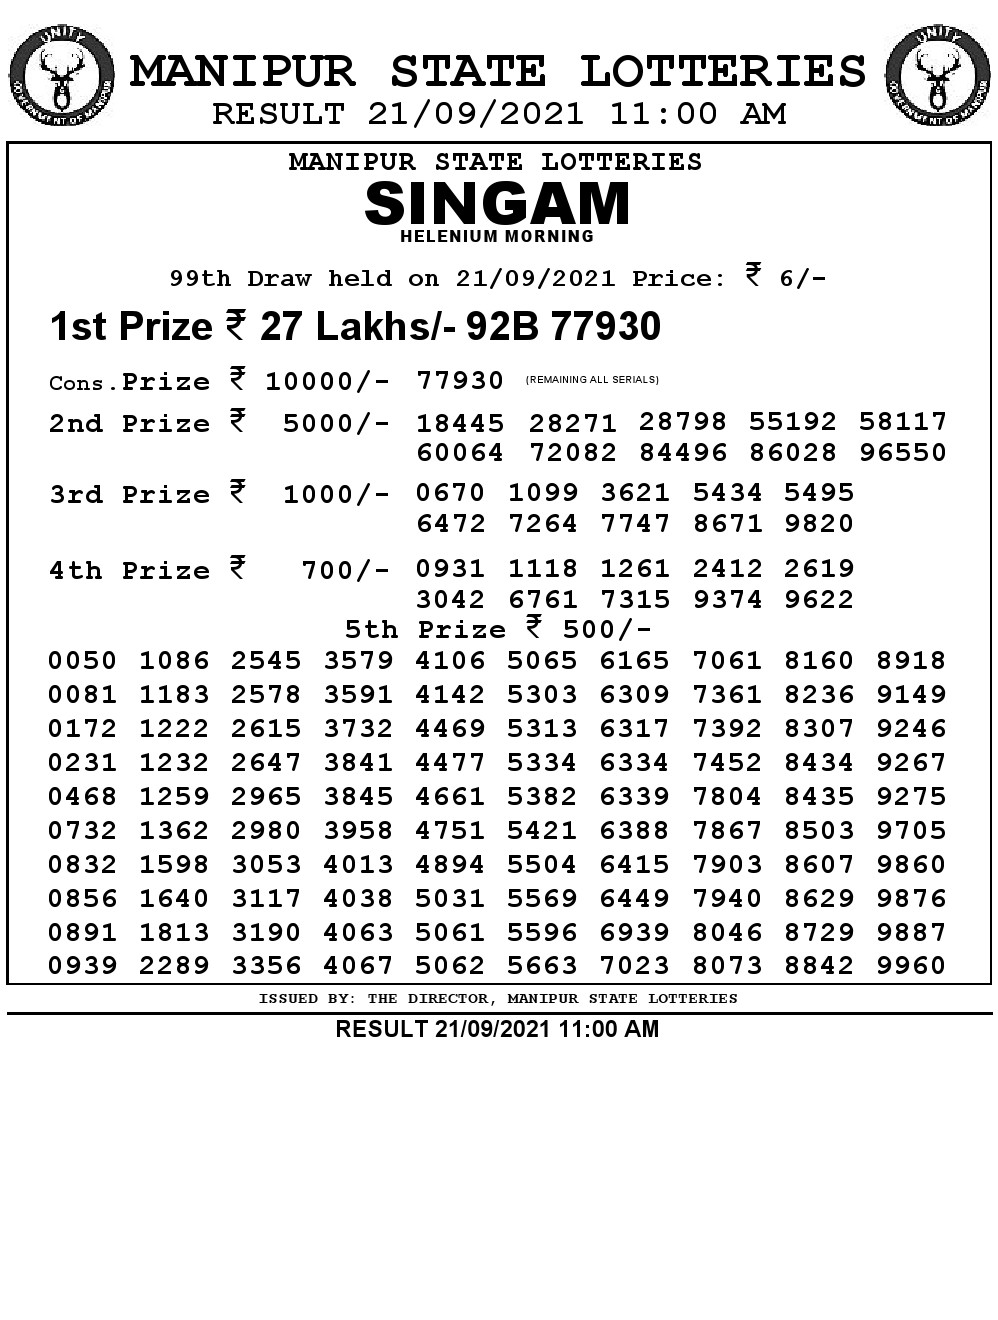 Manipur State Lottery Result (21.09.2021) Out now 11:00 AM pdf download